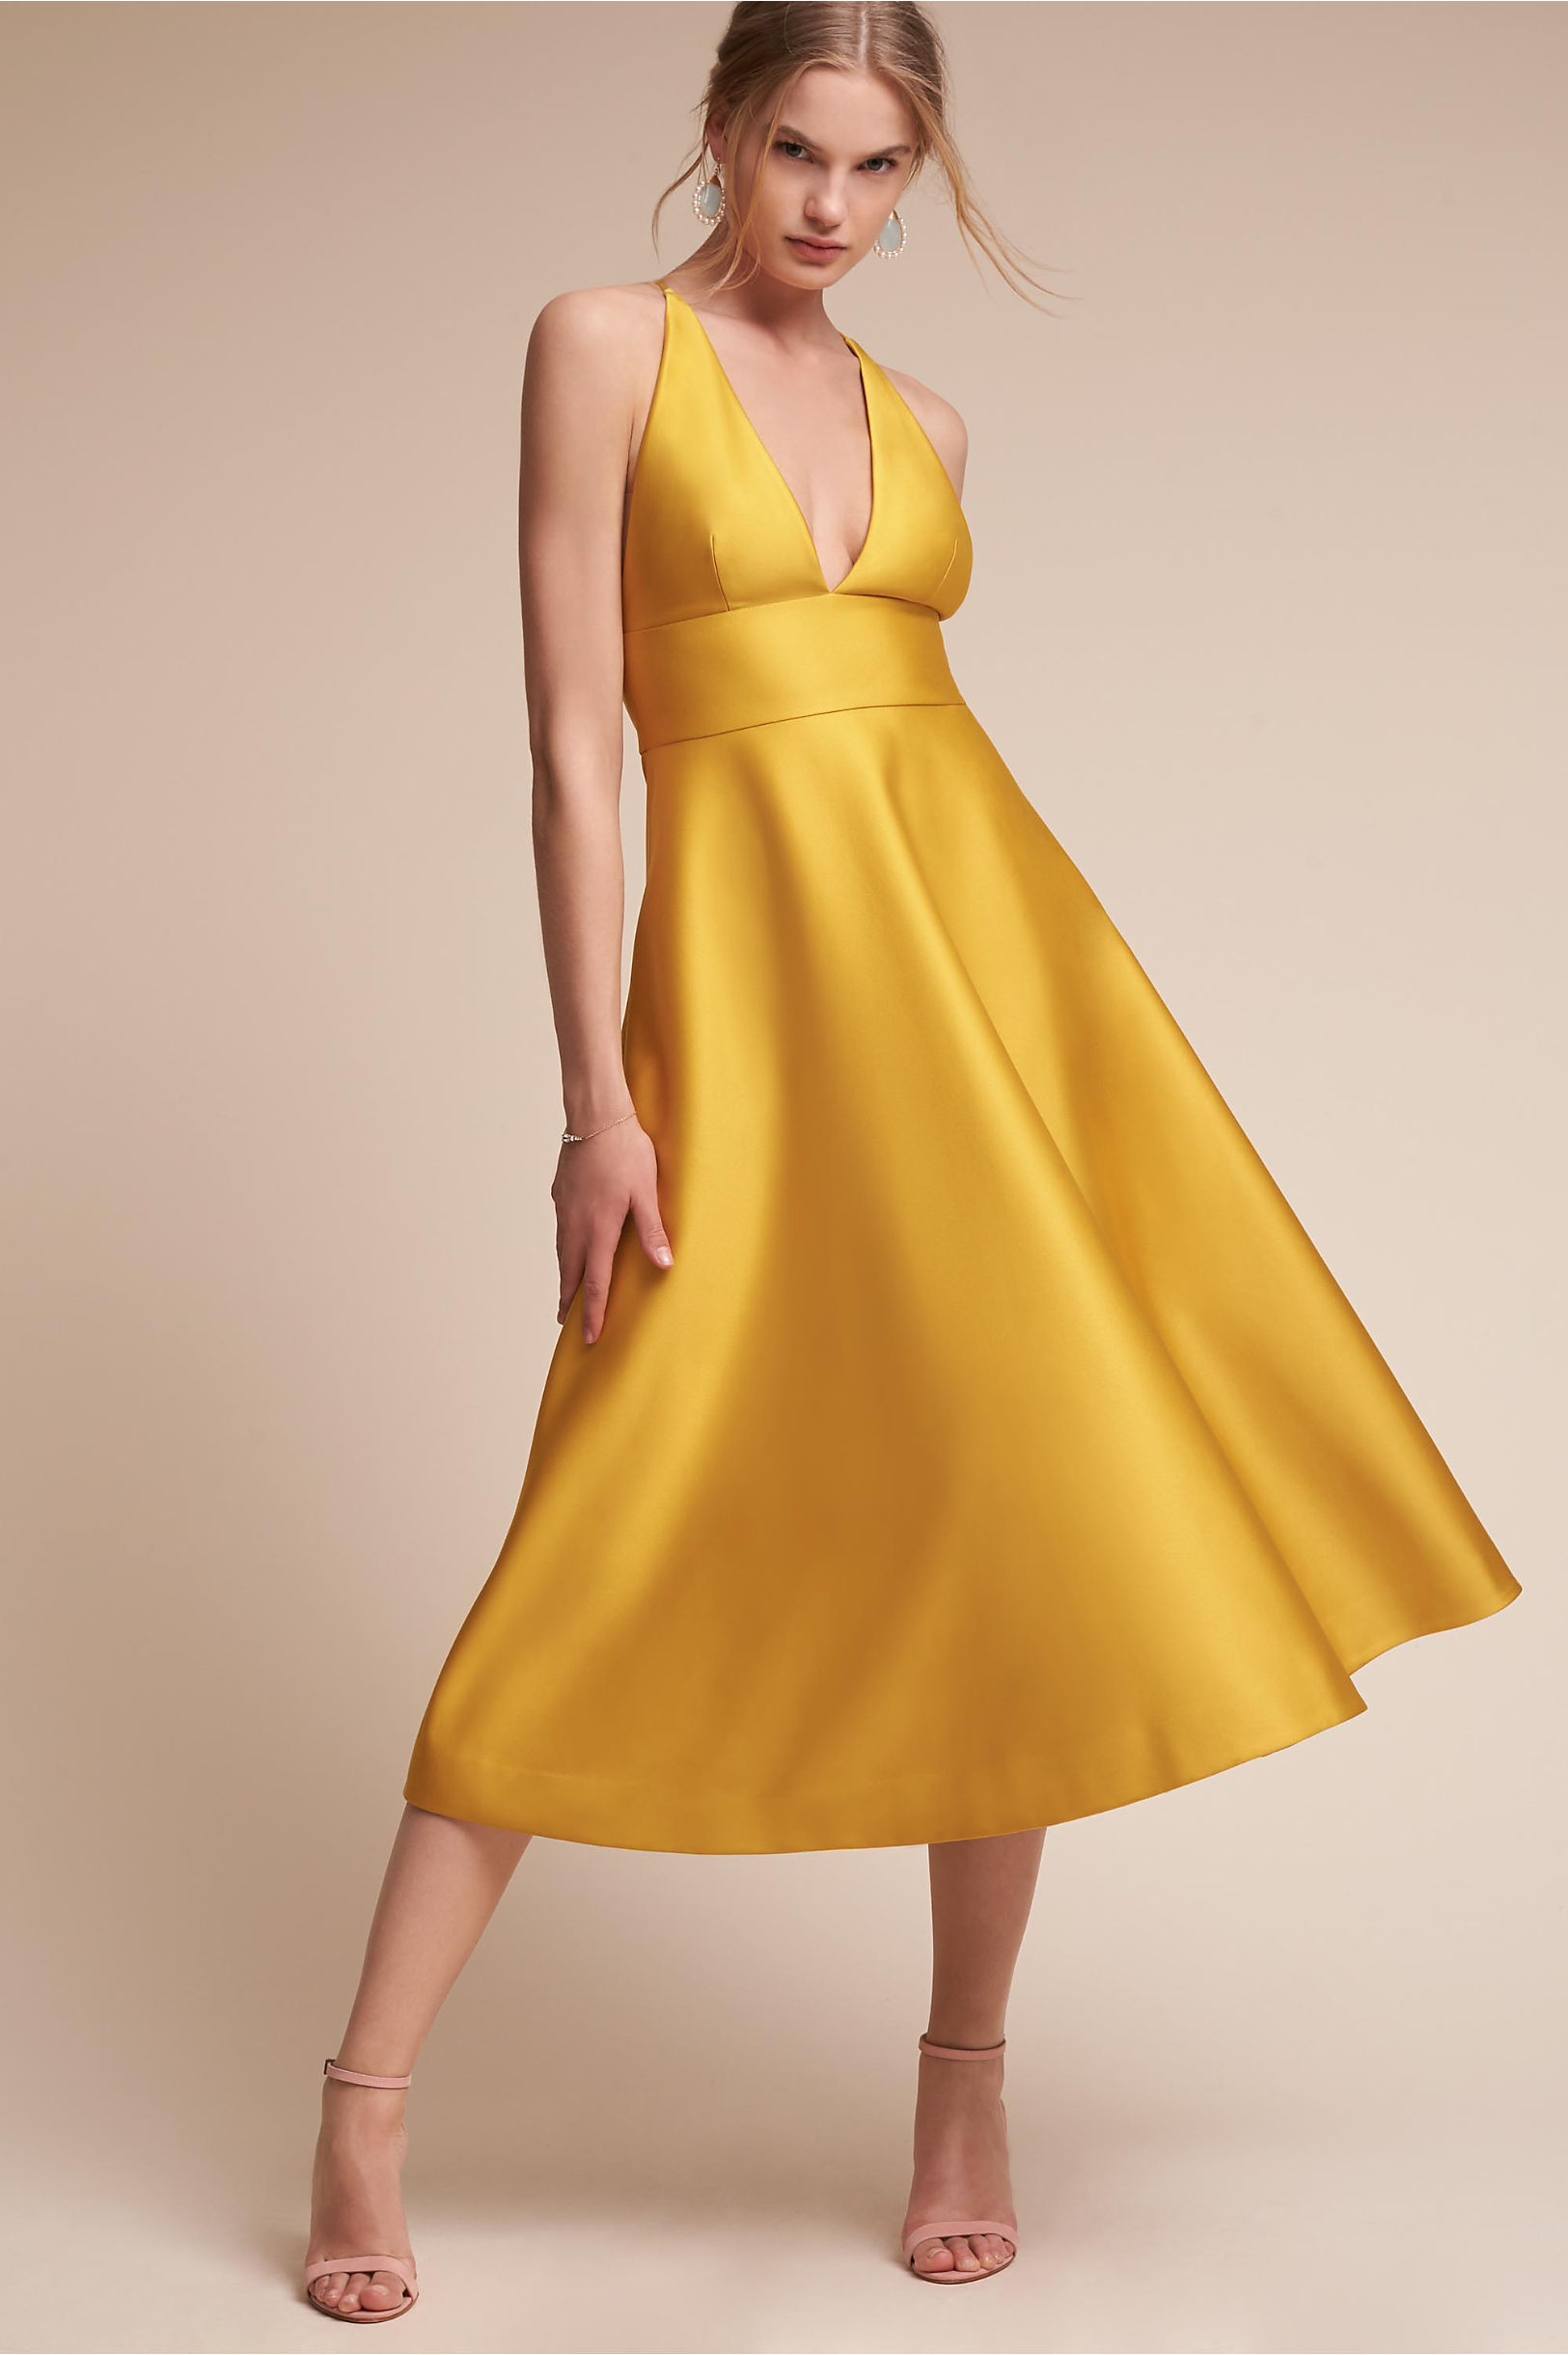 Shelby dress chartreuse in sale bhldn chartreuse shelby dress bhldn ombrellifo Gallery